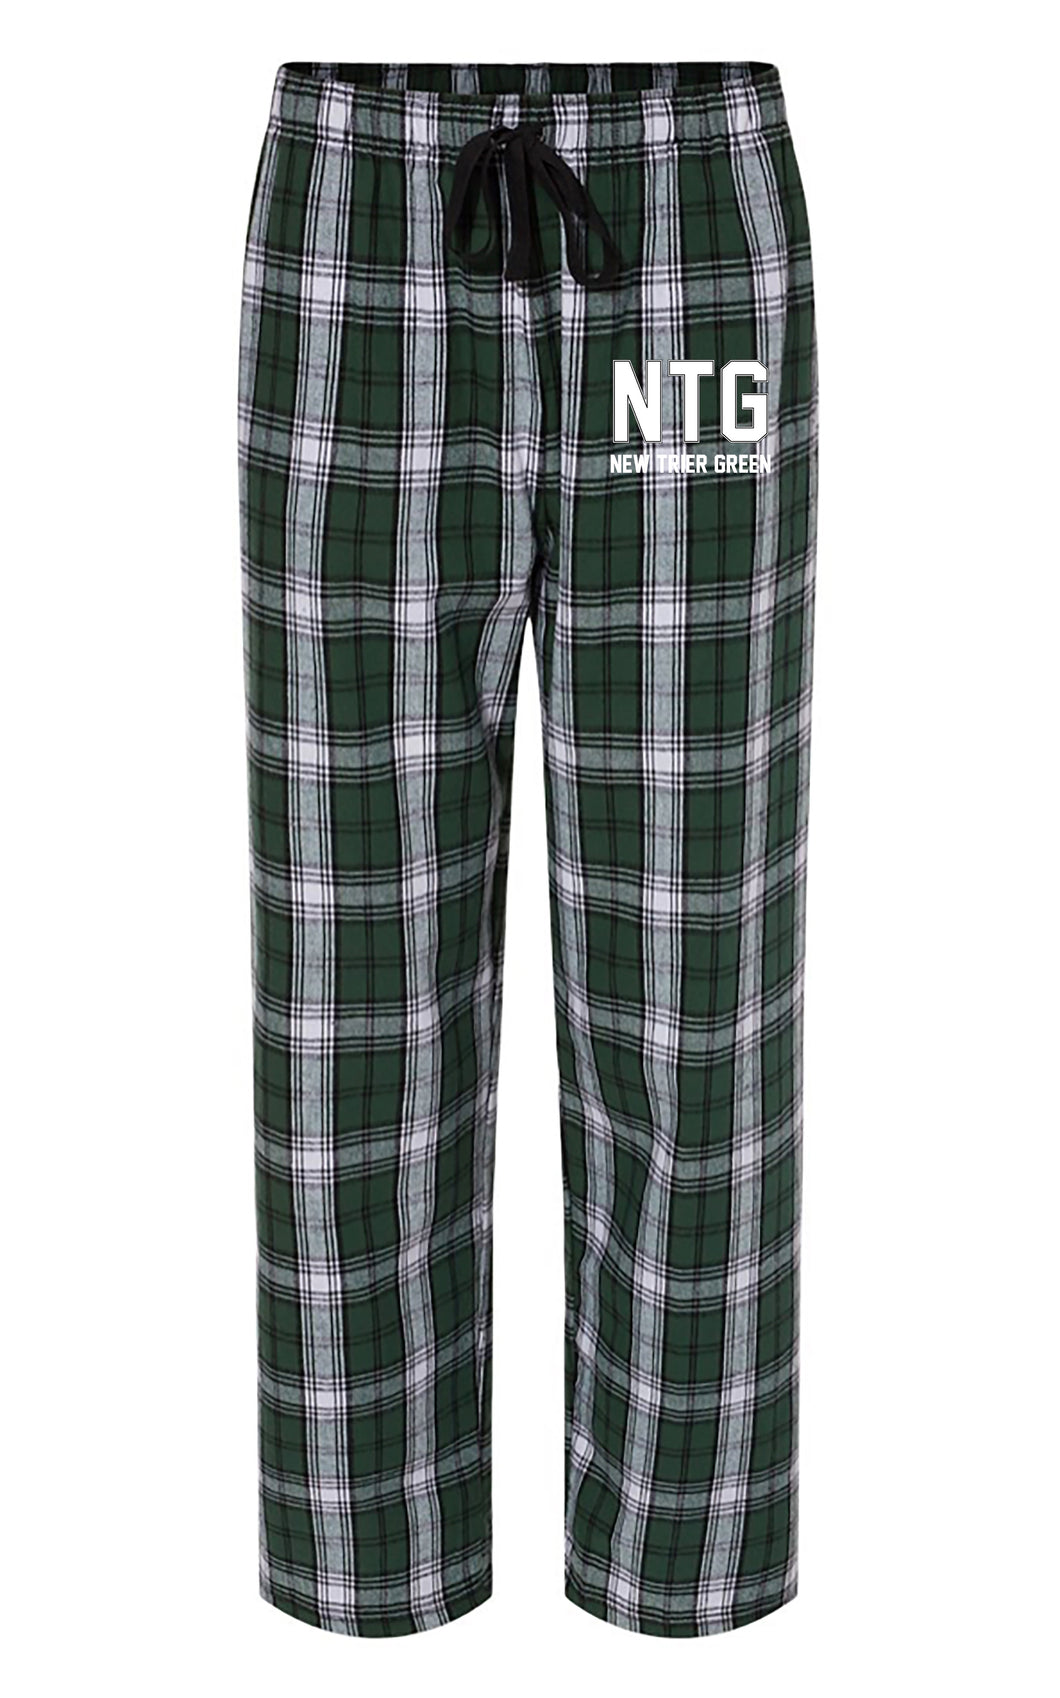 New Trier Green Hockey Flannel PJ Pant